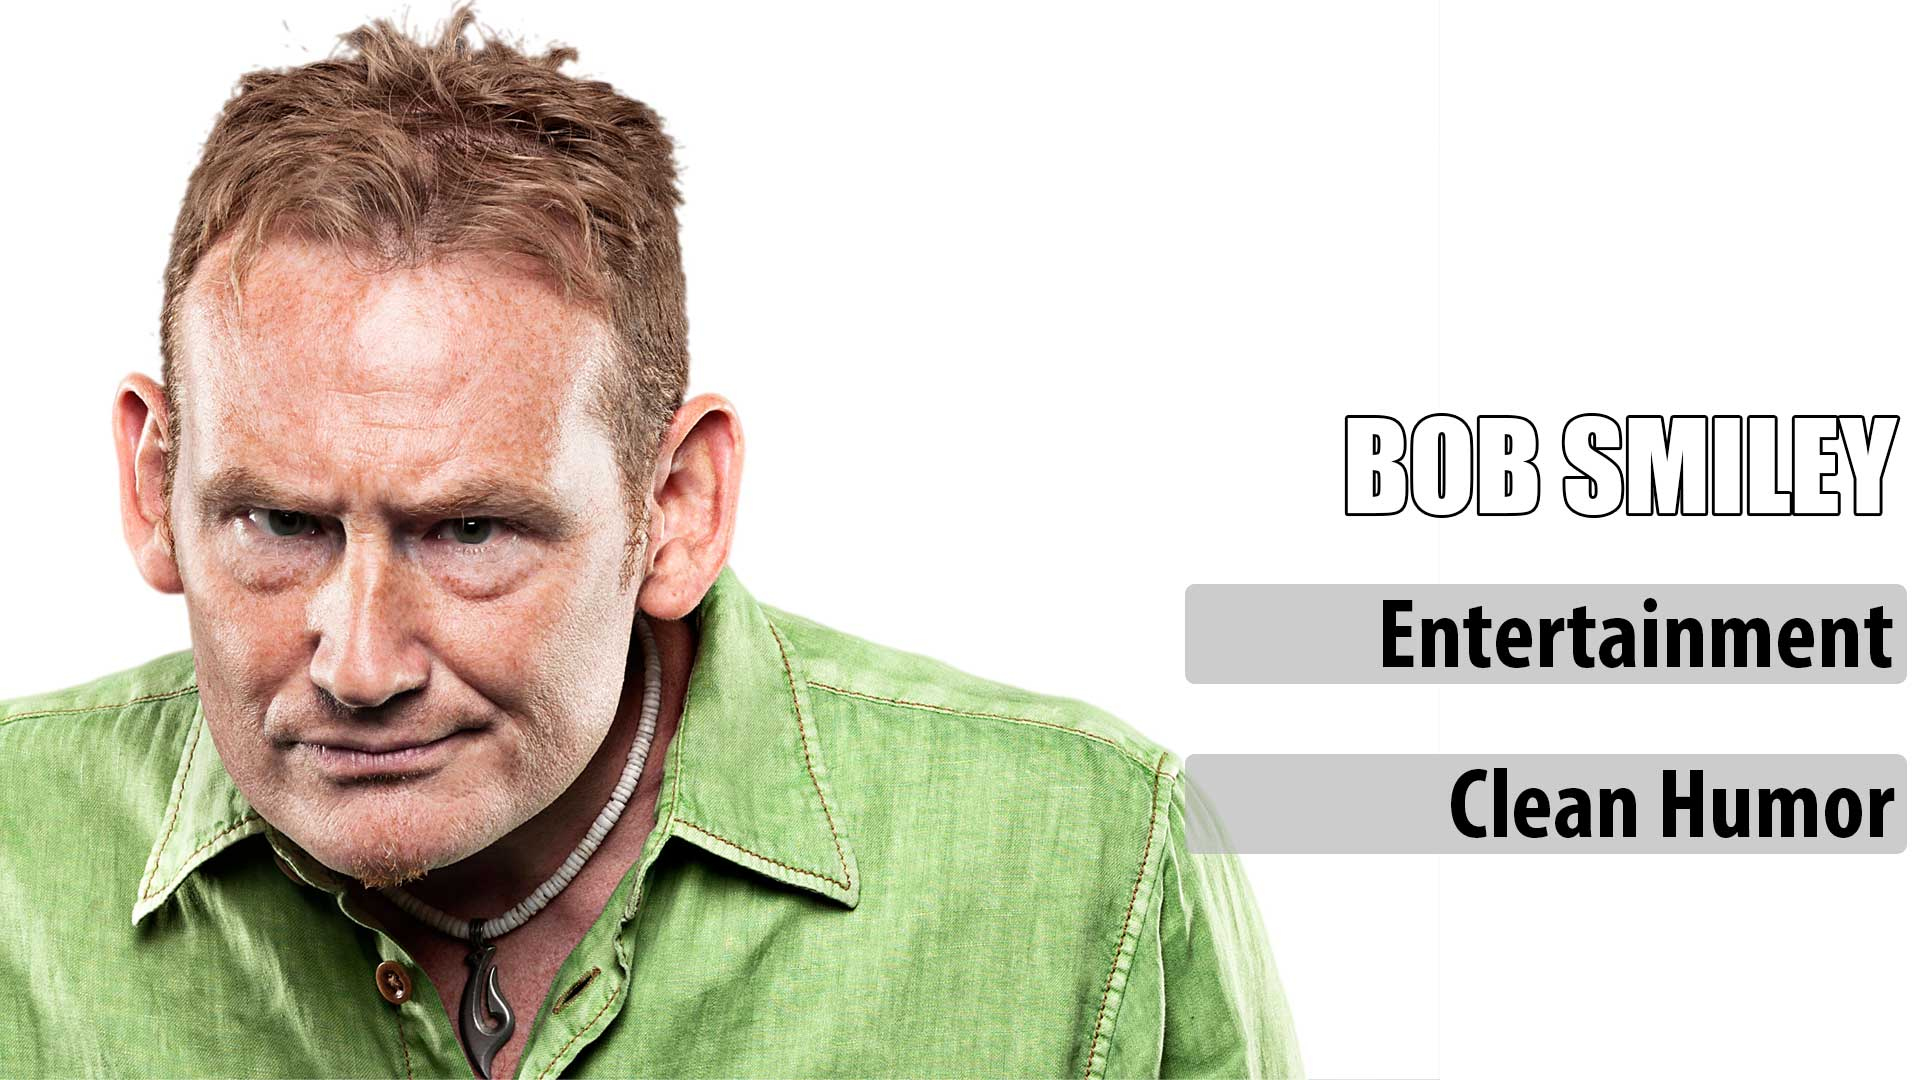 Comedian Bob Smiley